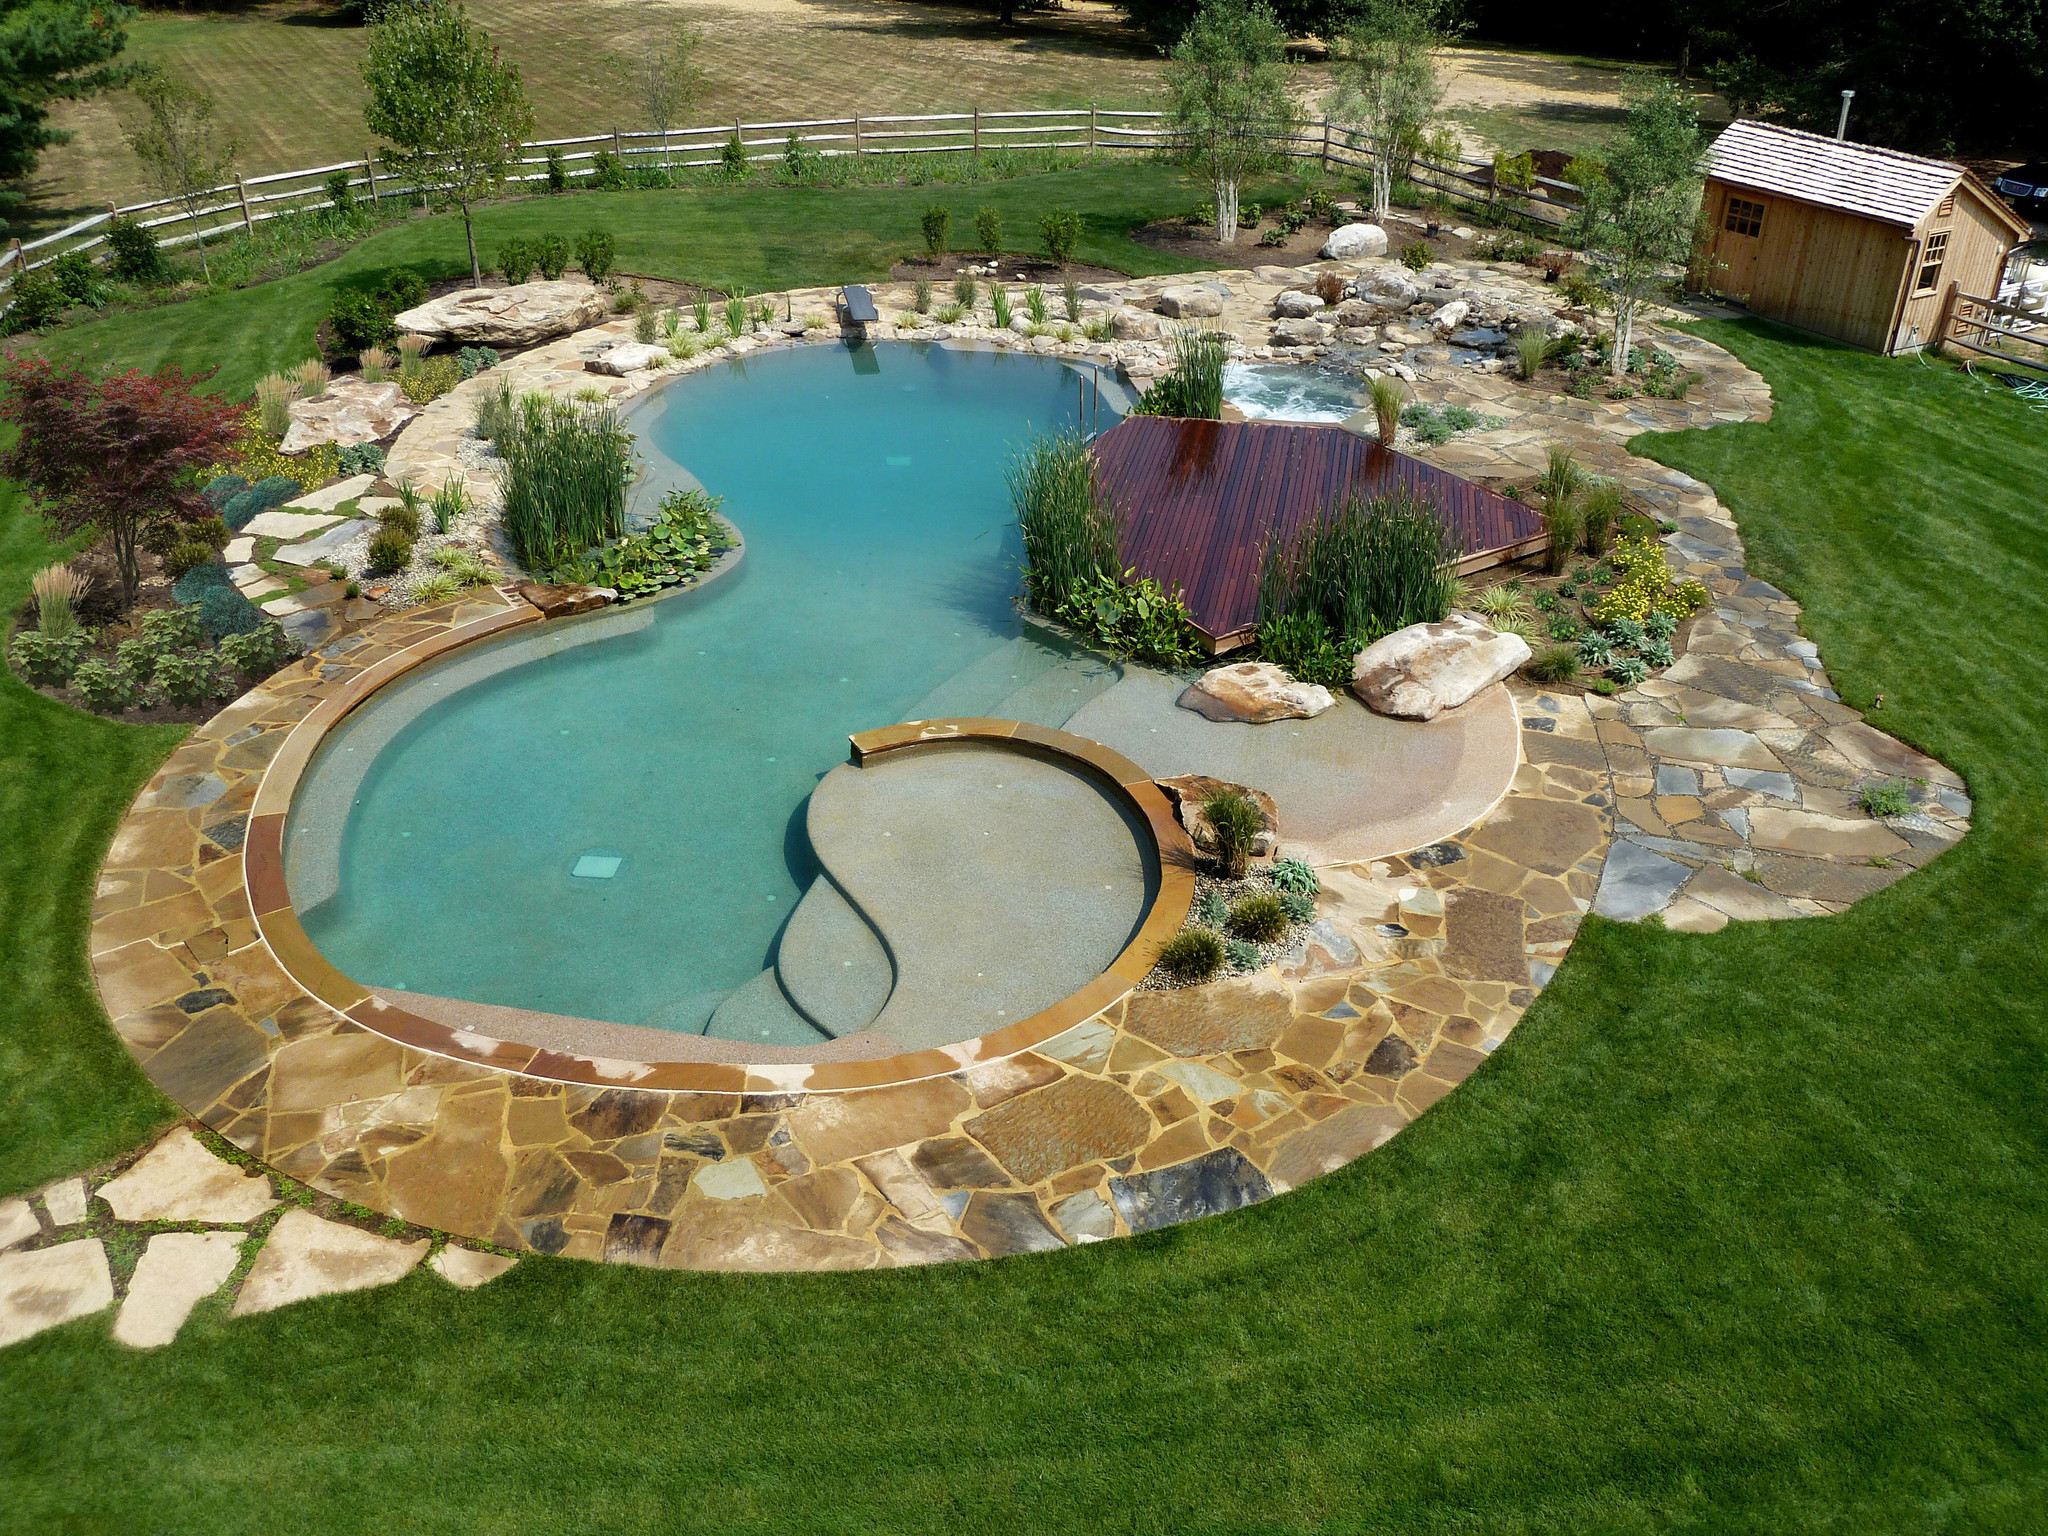 Natural swimming pools la times - Natural swimming pool design ...